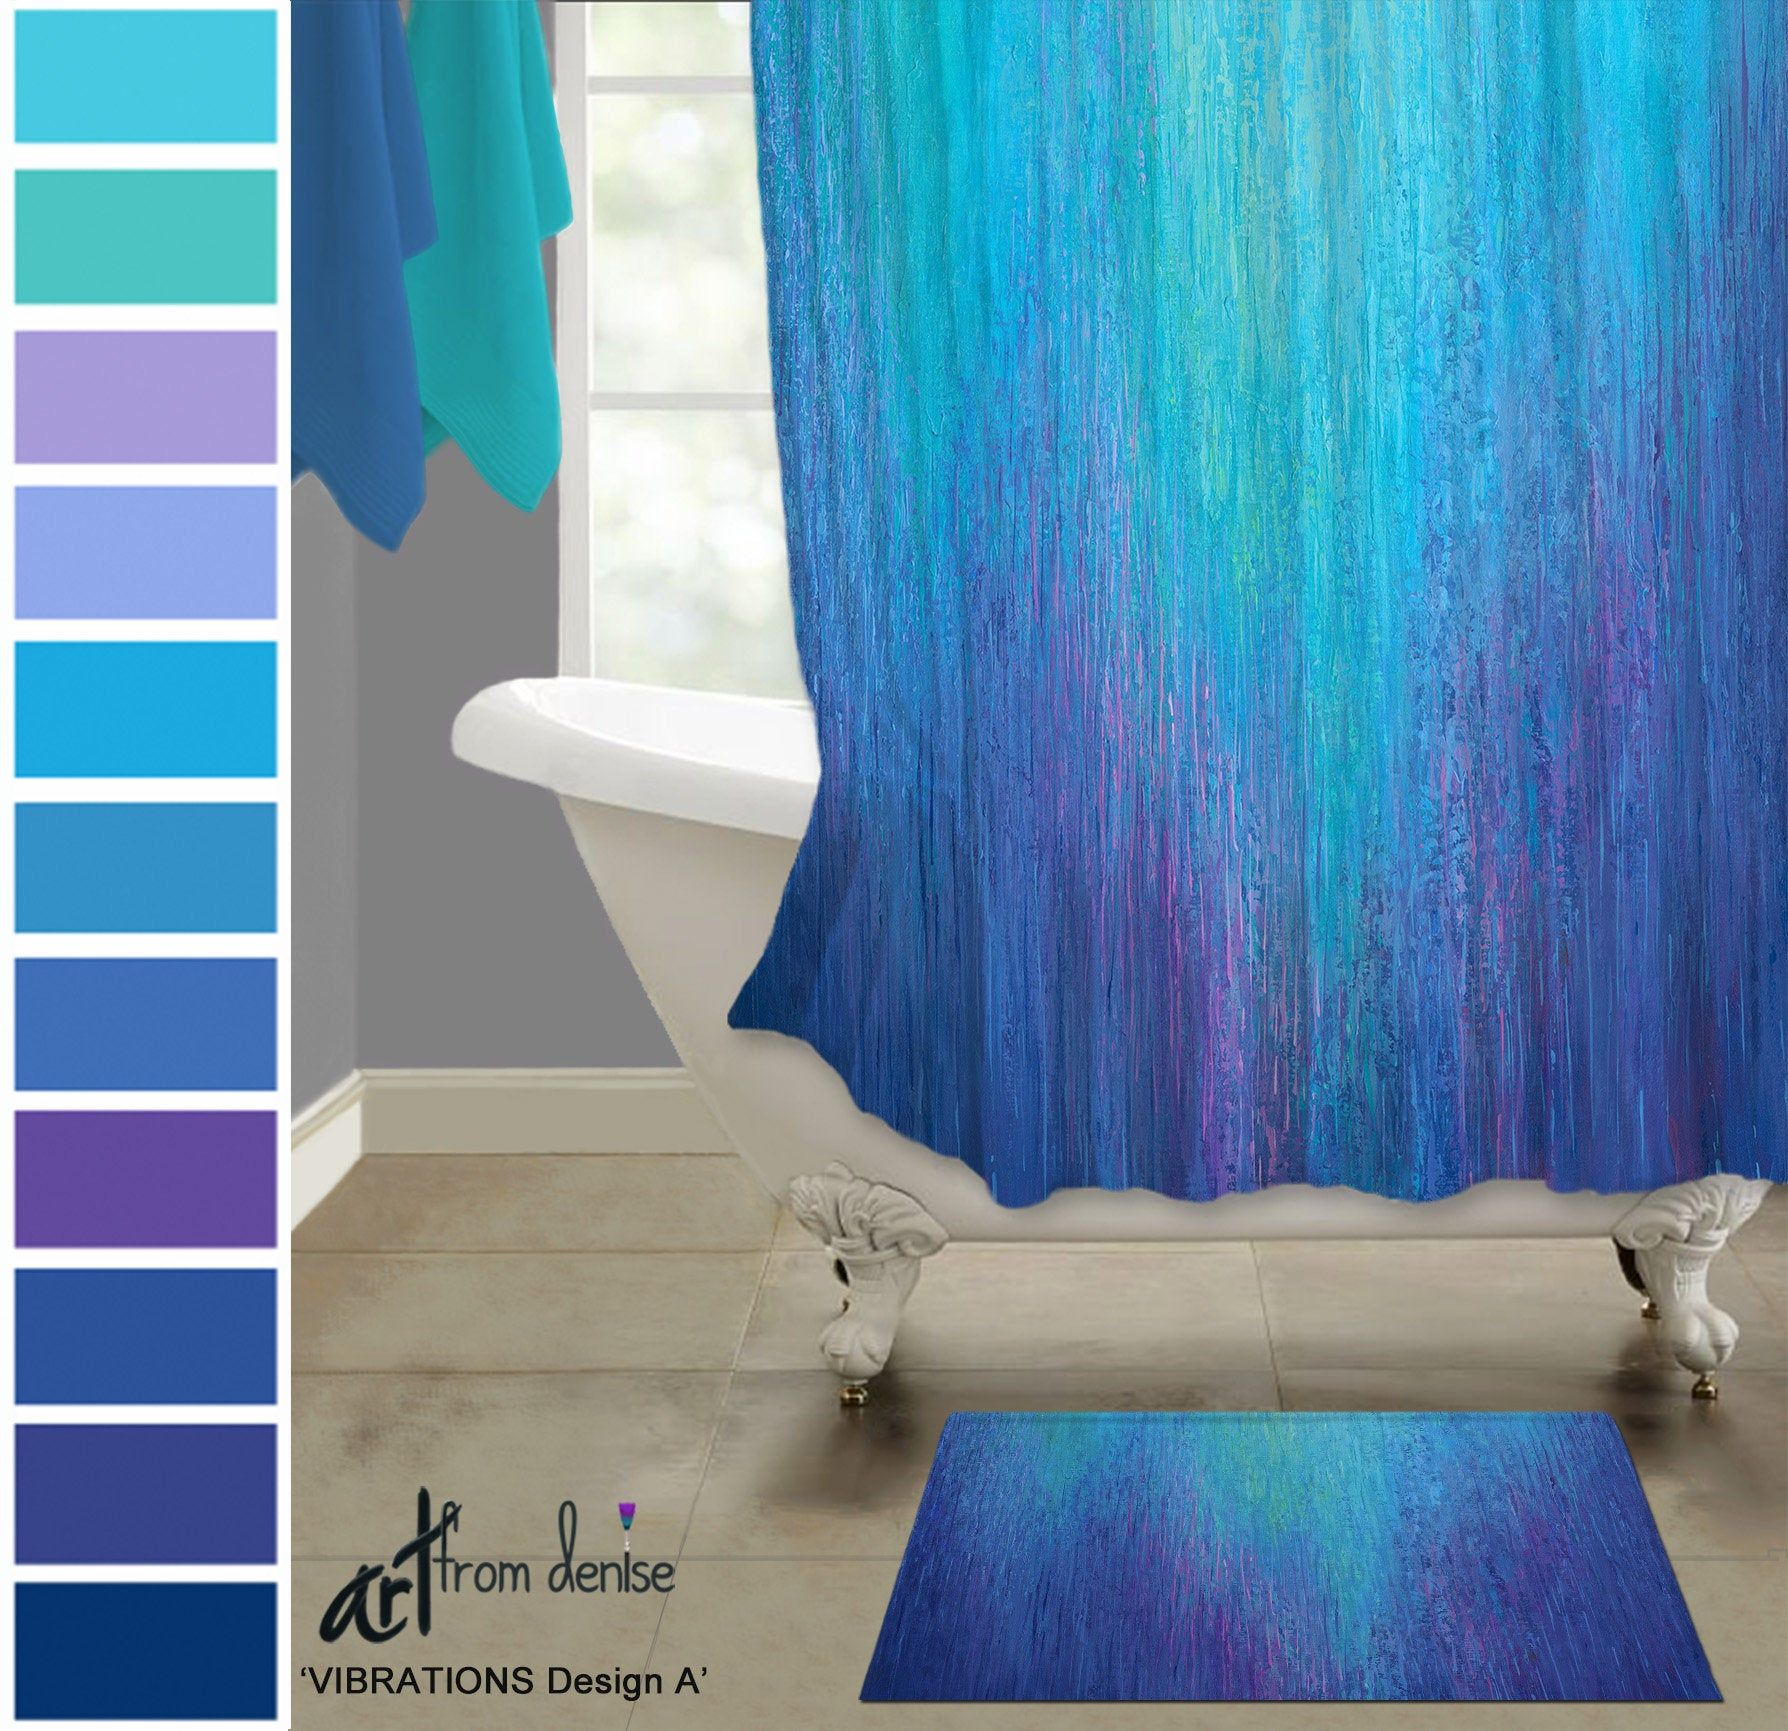 Purple And Blue Shower Curtain And Bath Mat Sets Cobalt Pink Aqua Master Bathroom Decor Waterproof Fabric Shower Curtain And Rug Set In 2020 Colorful Shower Curtain Blue Shower Curtains